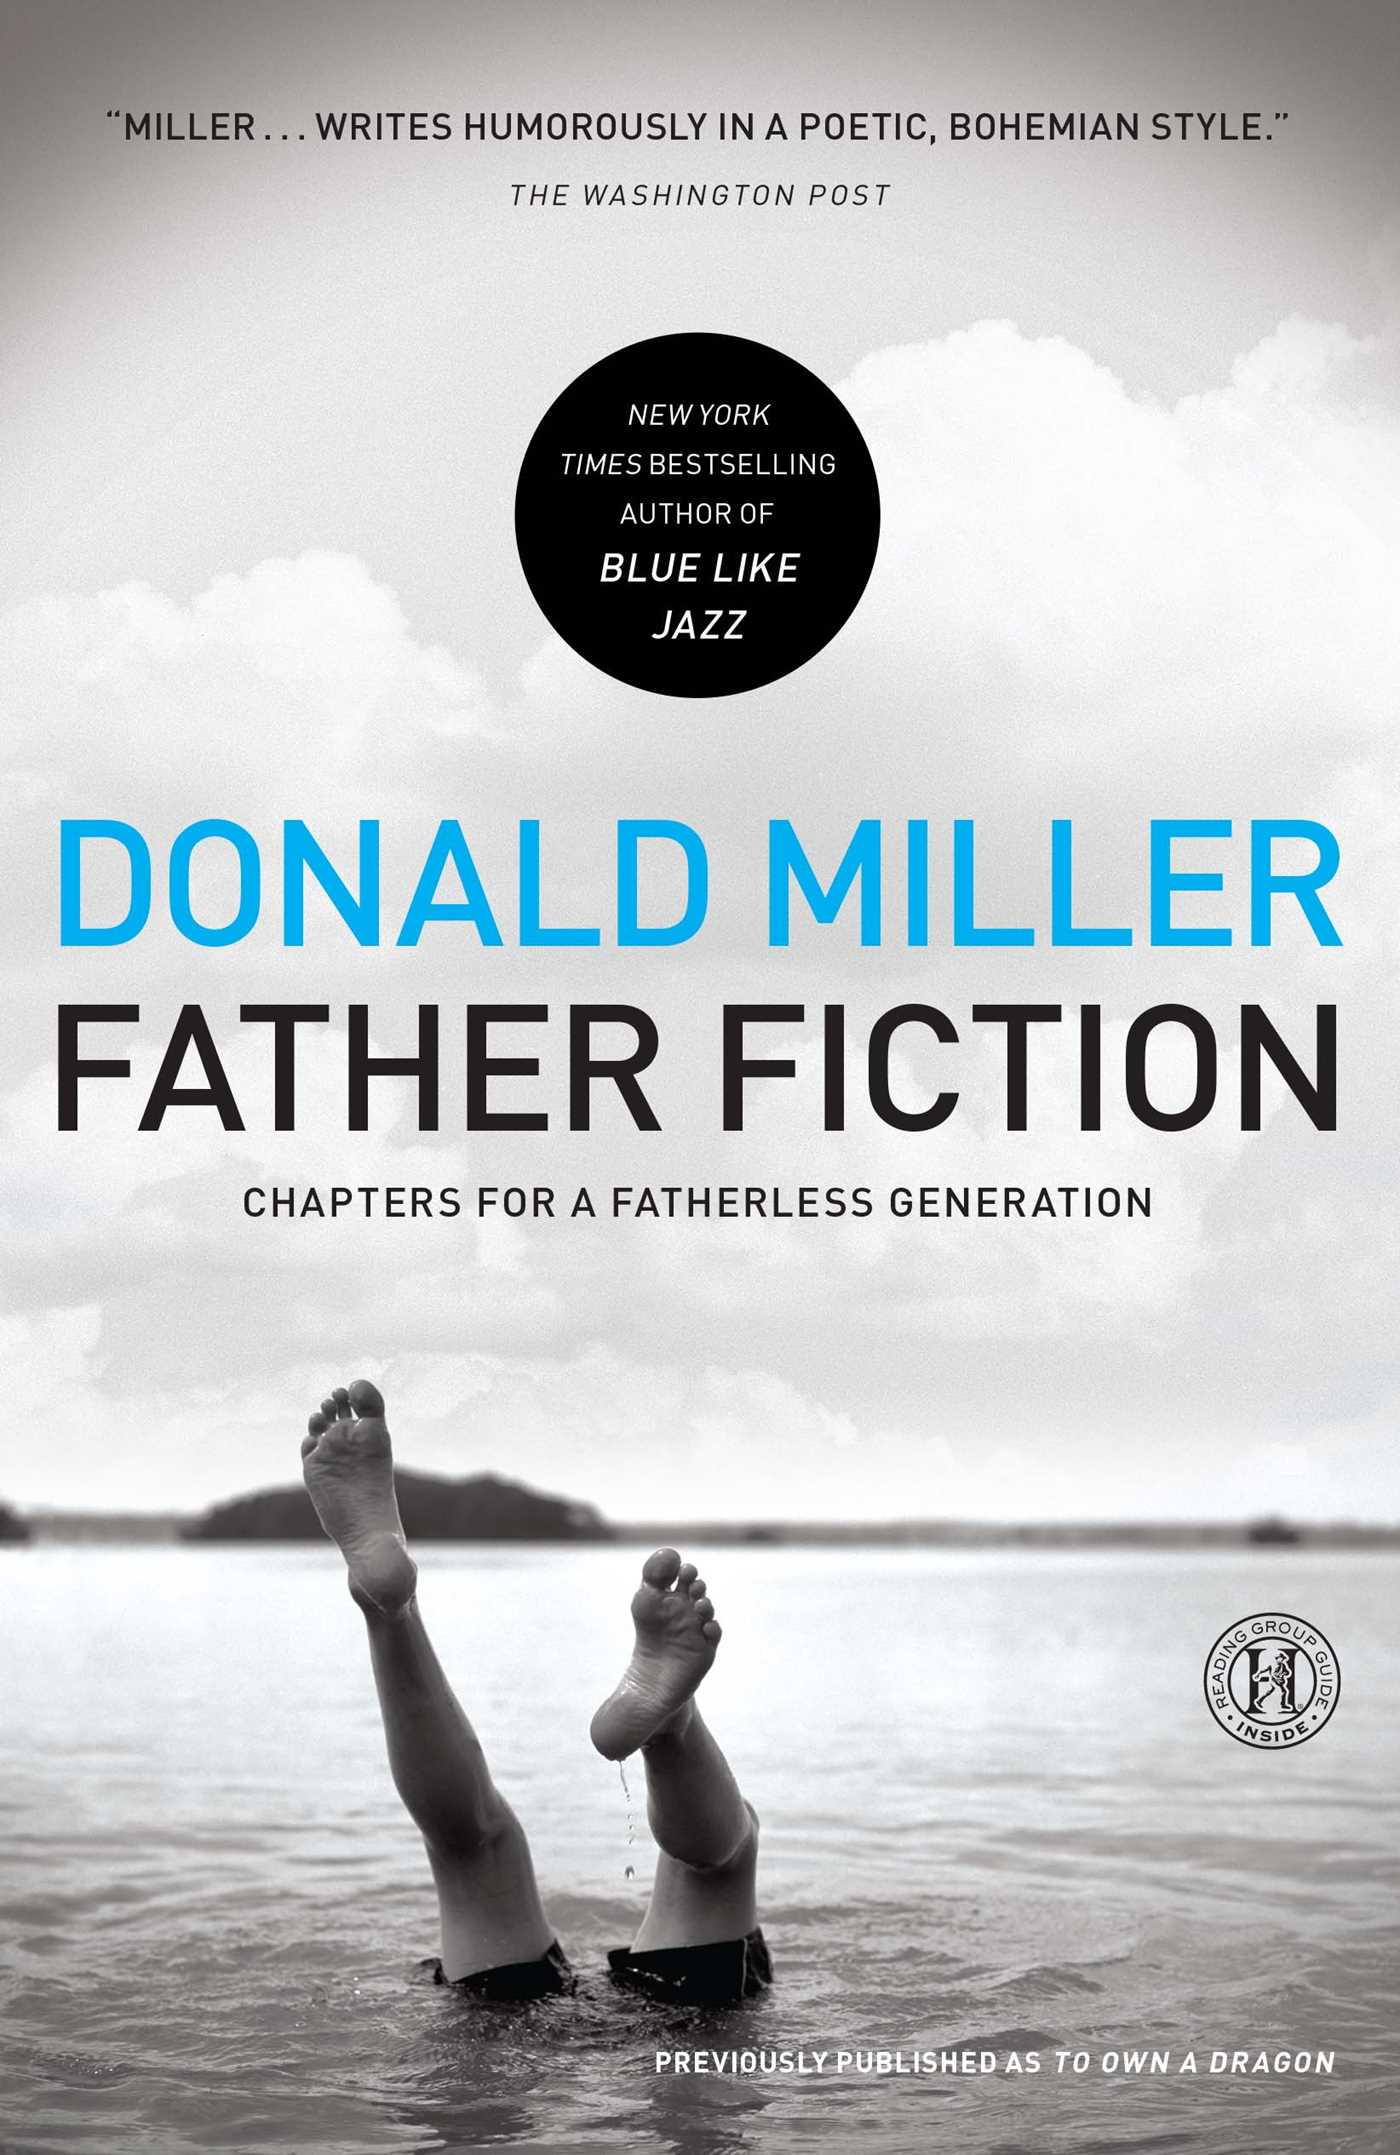 Father-fiction-9781439190531_hr